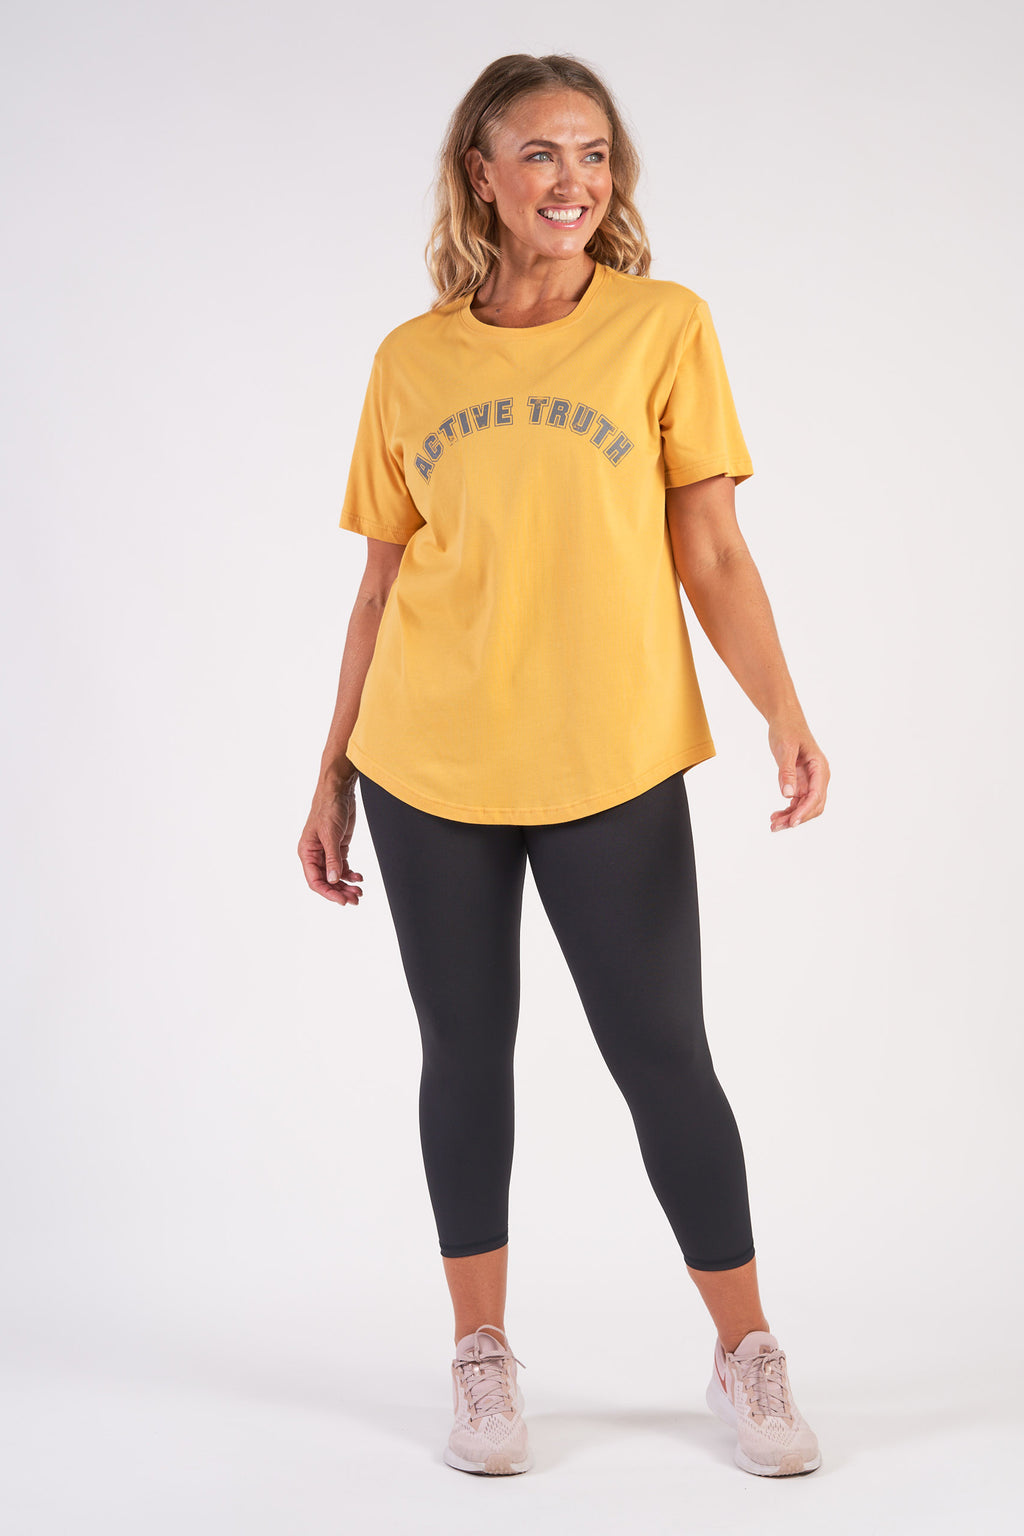 activewear-relaxed-crew-tee-organic-cotton-saffron-large-front3